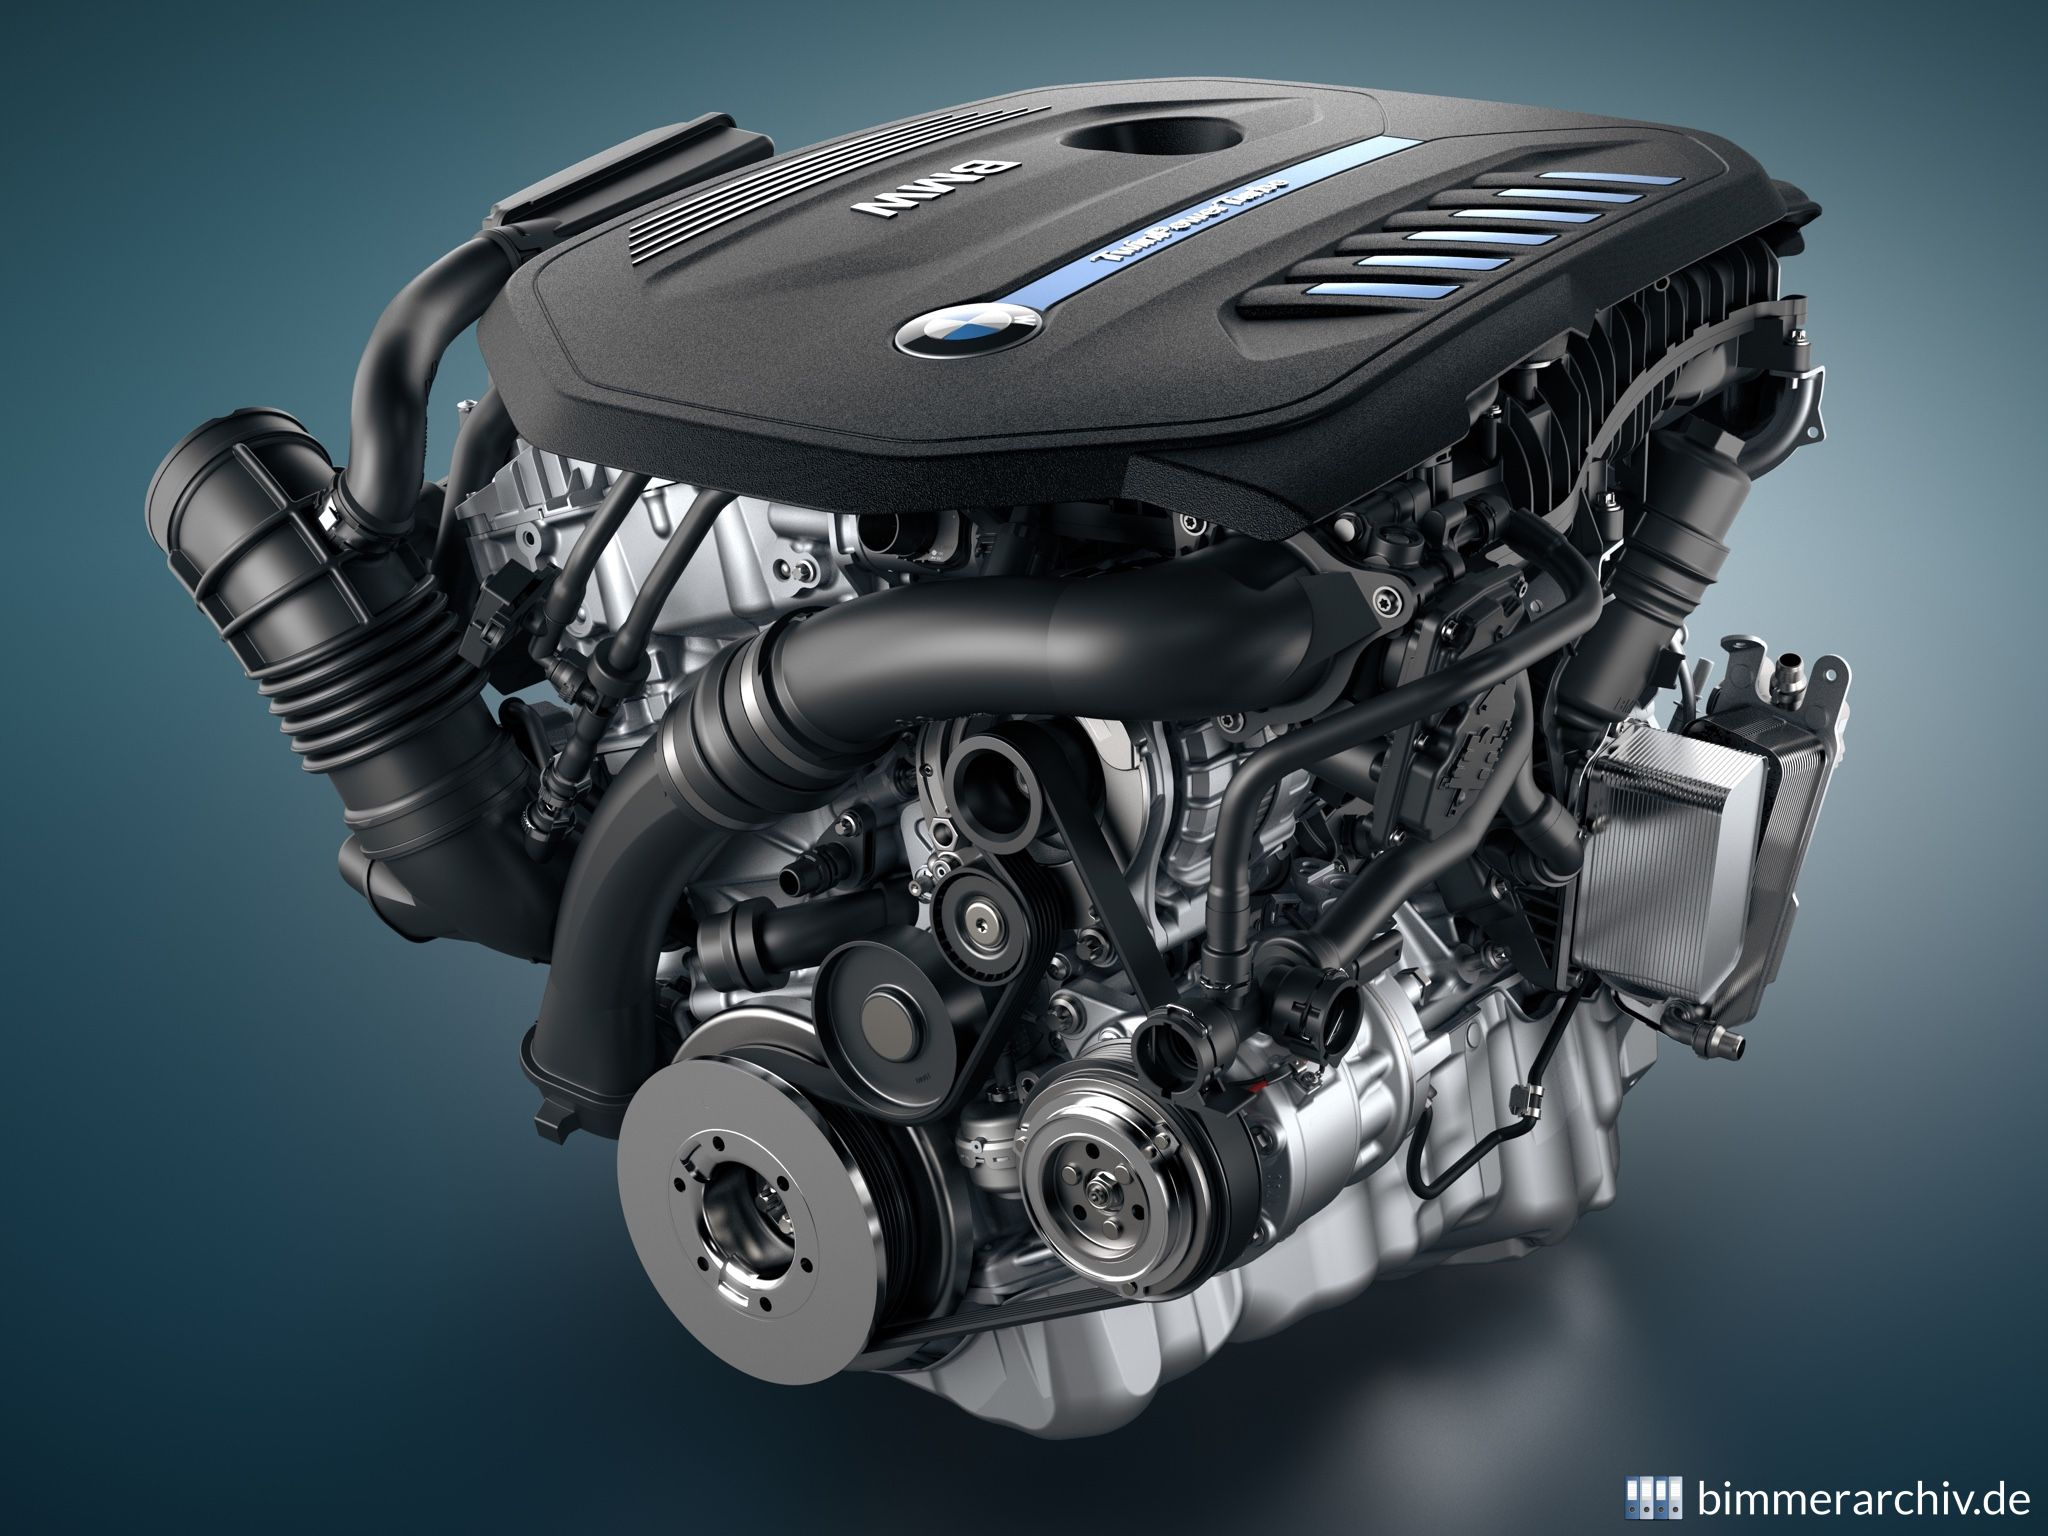 BMW TwinPower Turbo Six Cylinder Petrol Engine